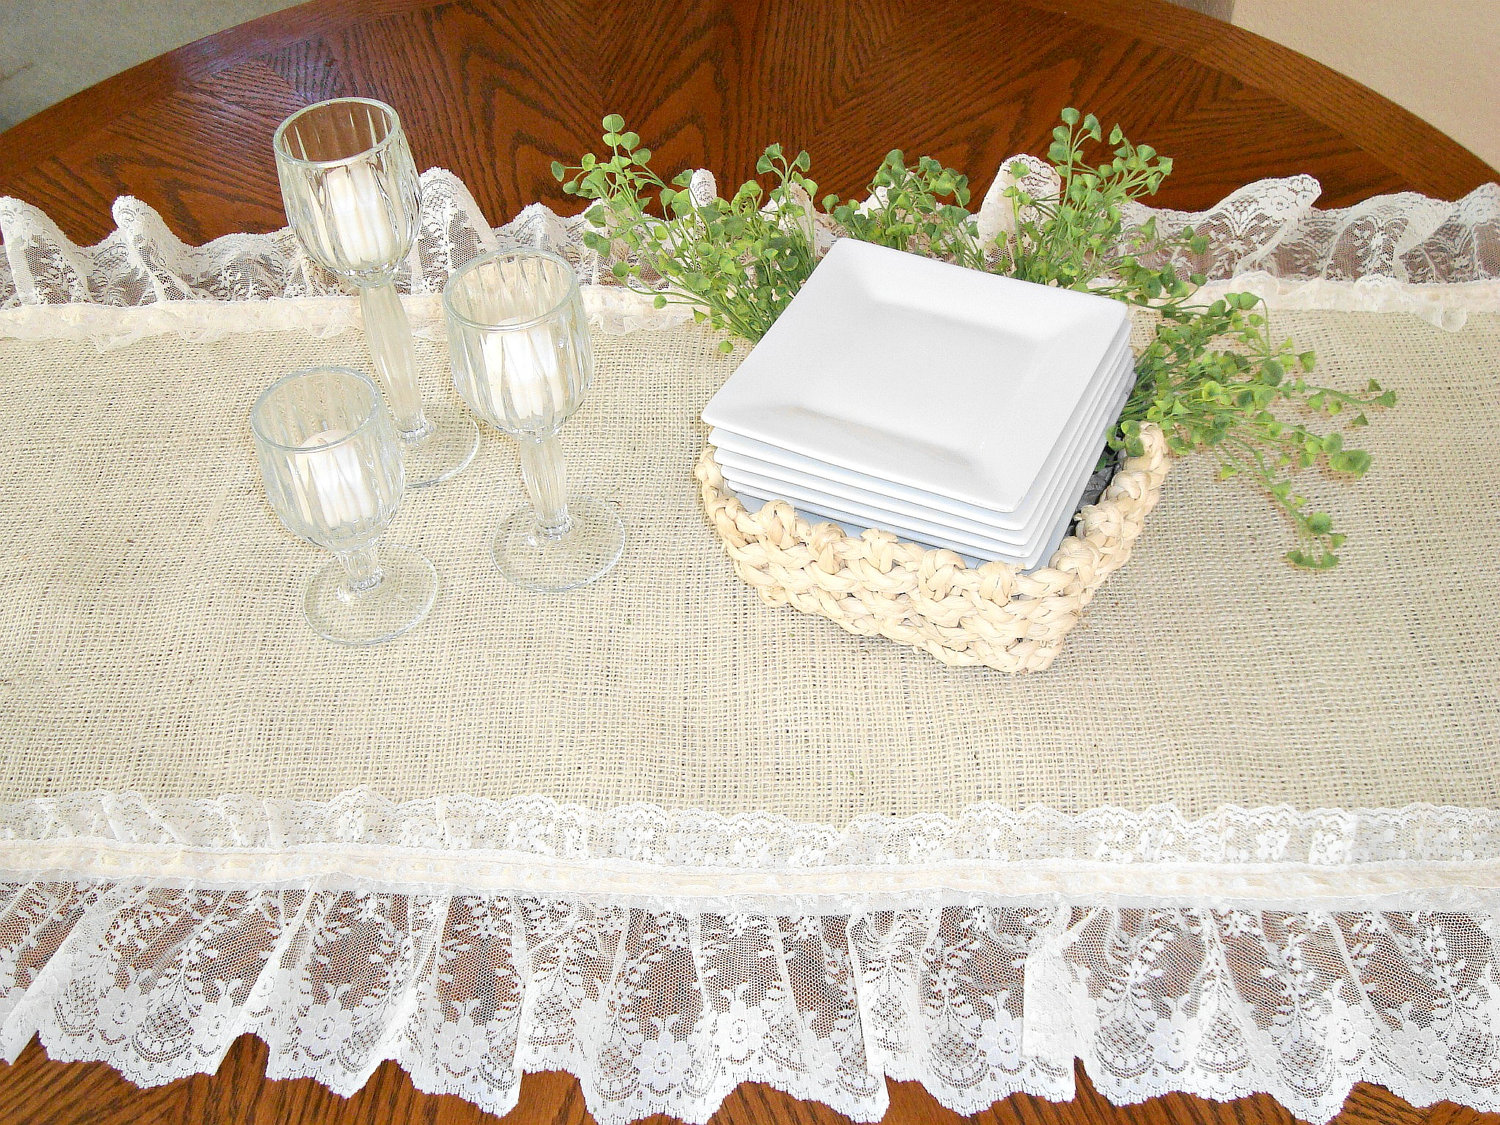 Dining Table Runners | Lace Burlap Table Runner | Lace Table Runners